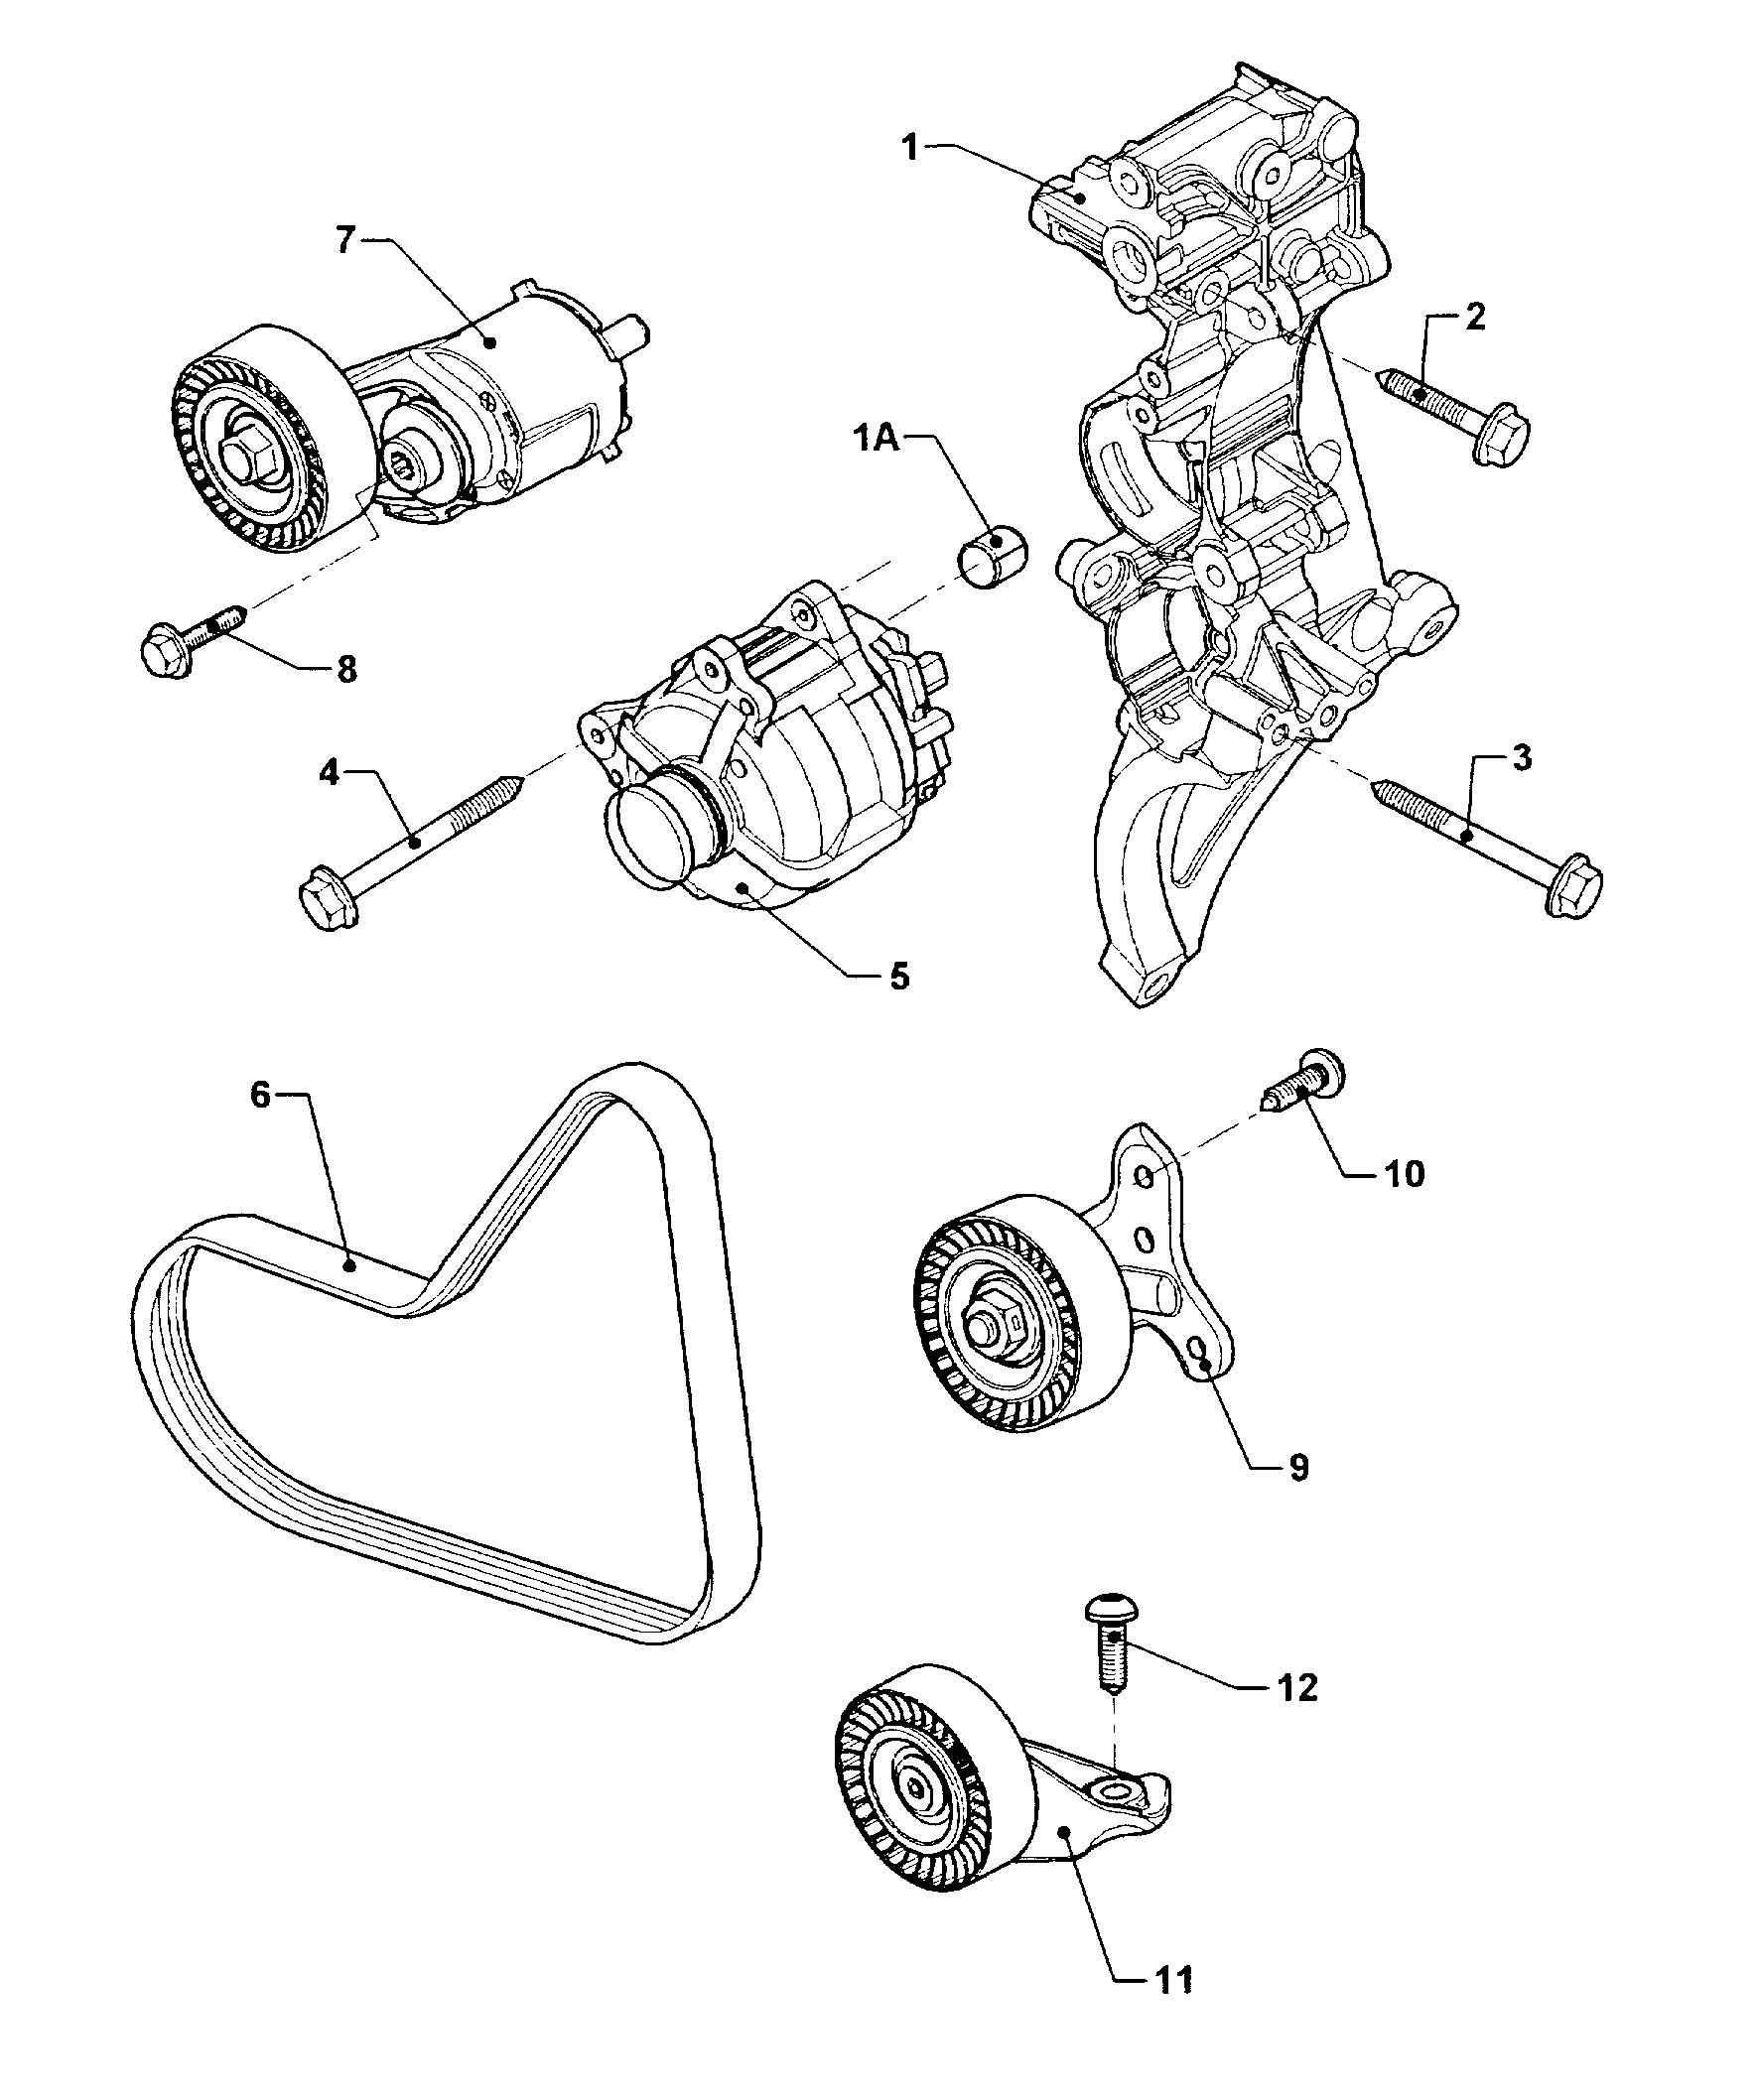 Volkswagen Jetta Variant Tensioning Element With Screw For